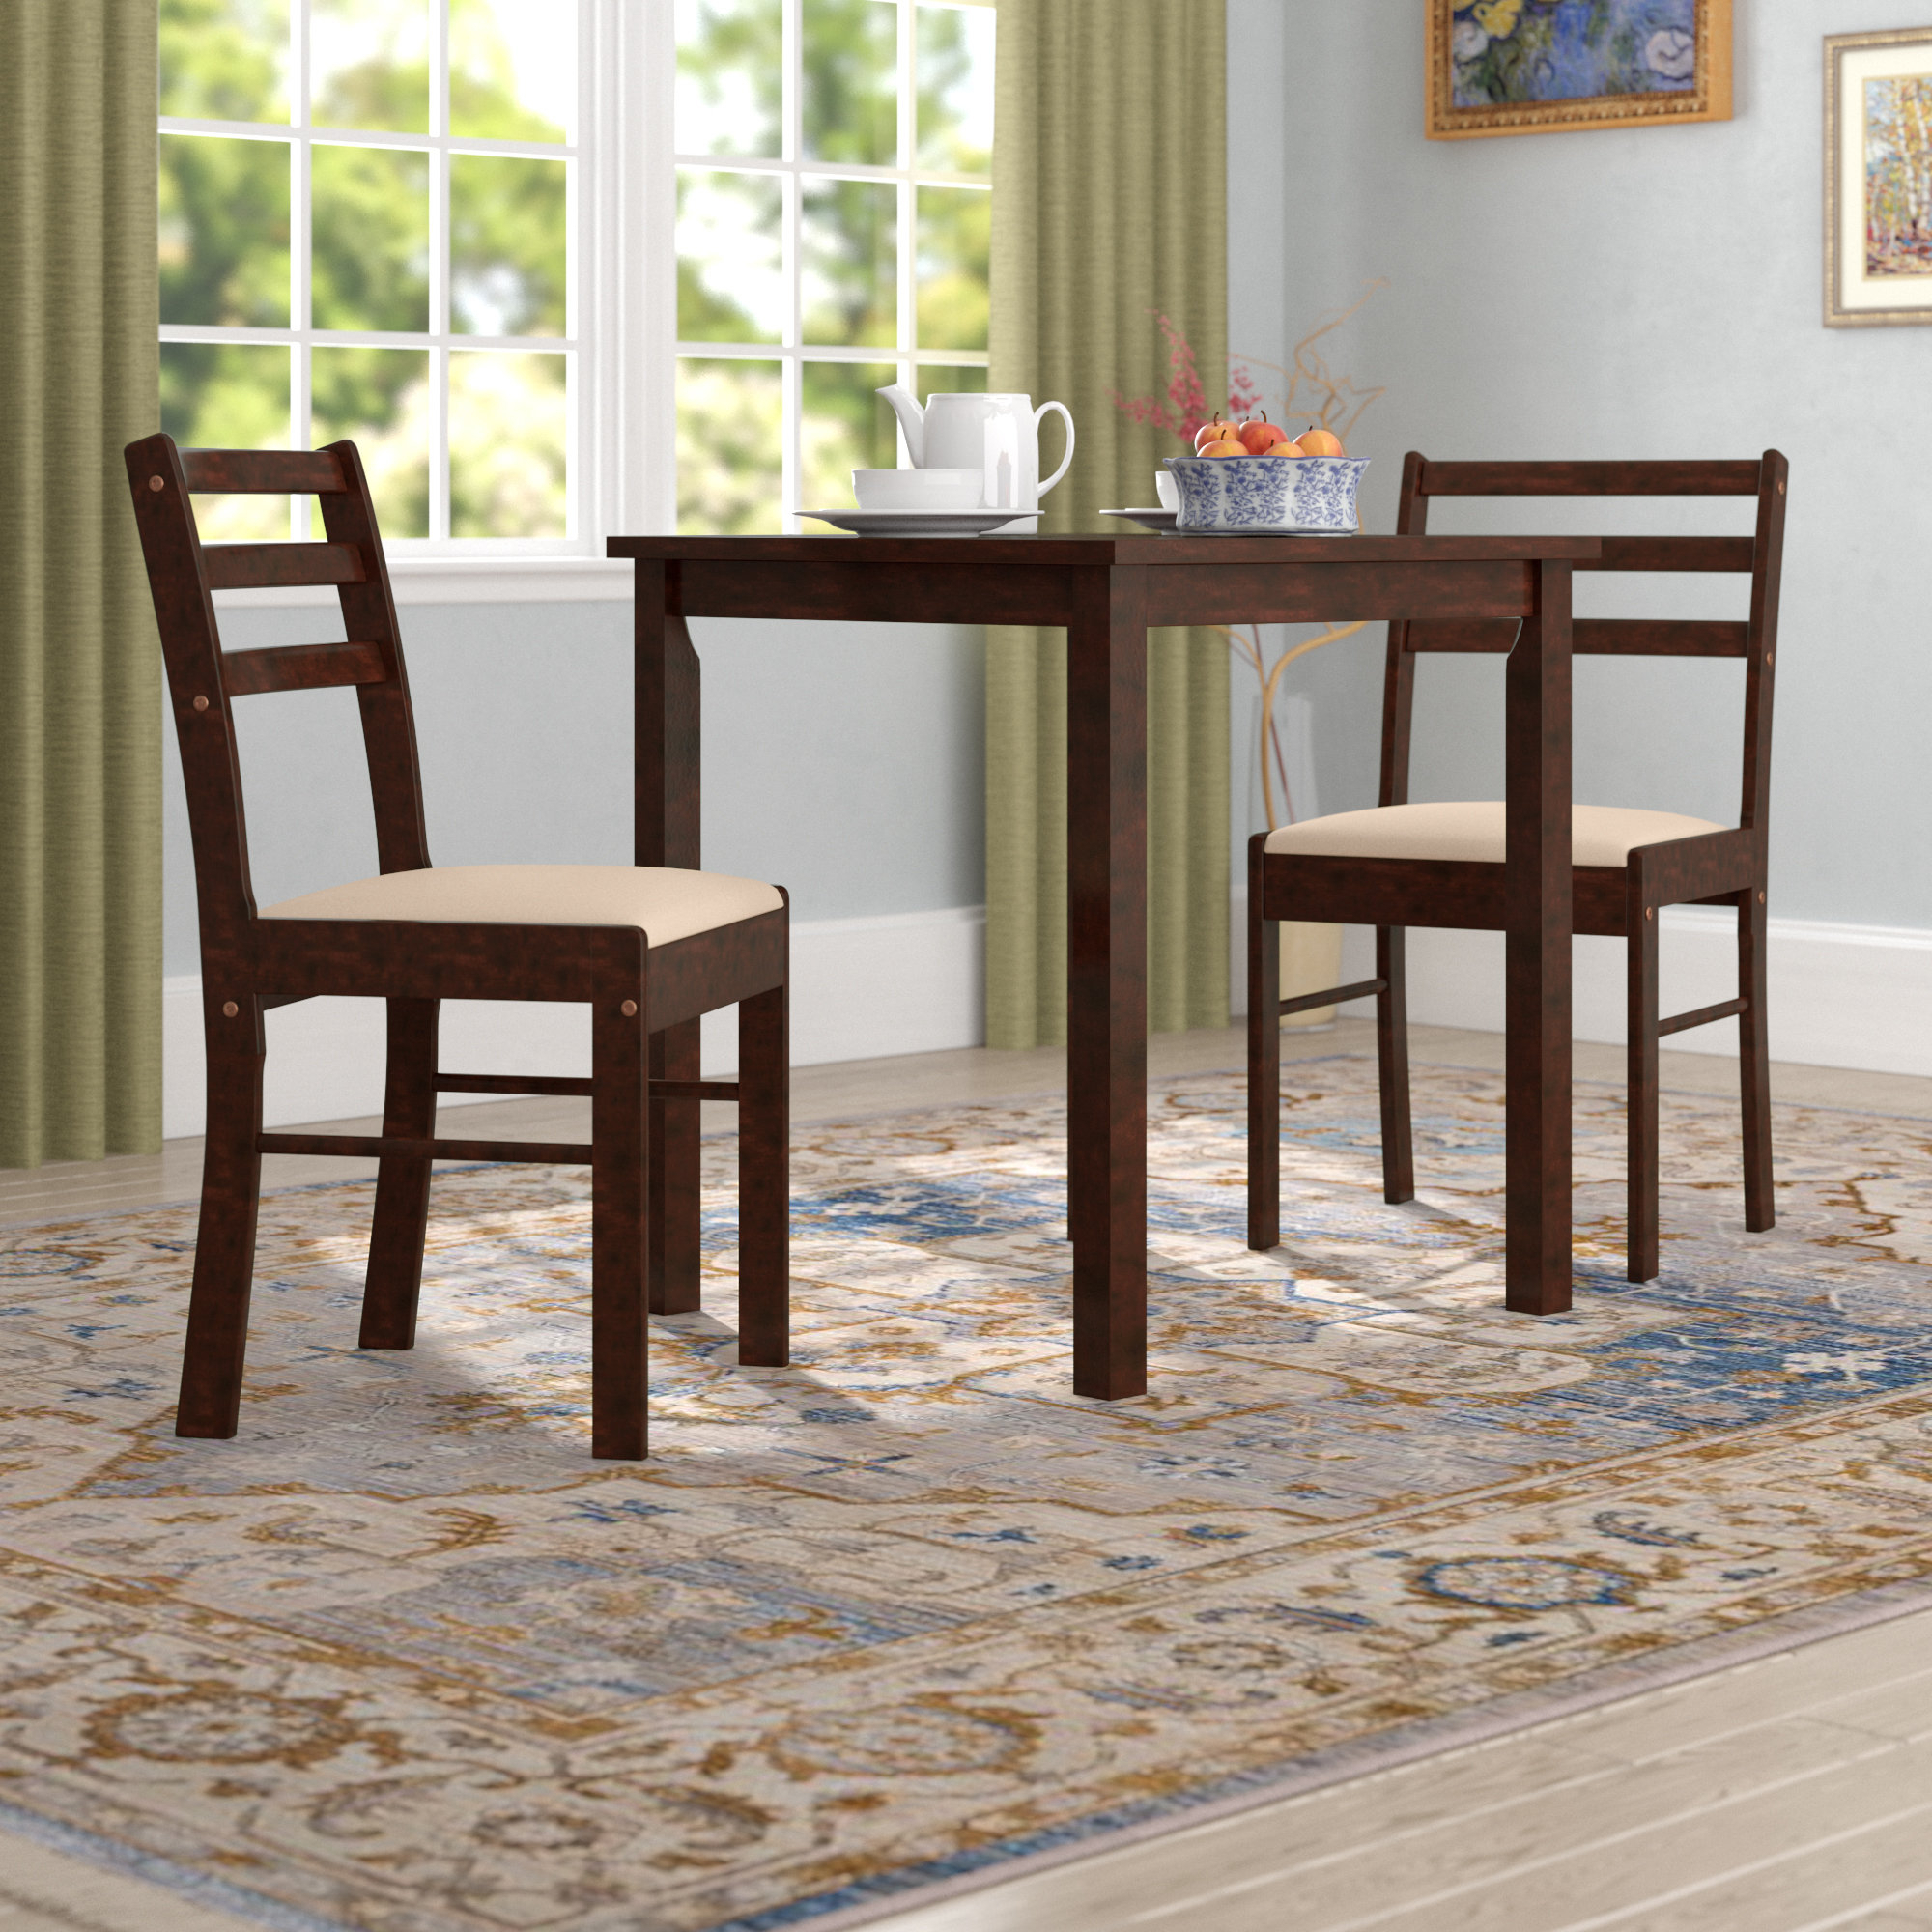 Clinger Pilaster Designs 3 Piece Dining Set Regarding Most Recently Released Kinsler 3 Piece Bistro Sets (Photo 10 of 20)